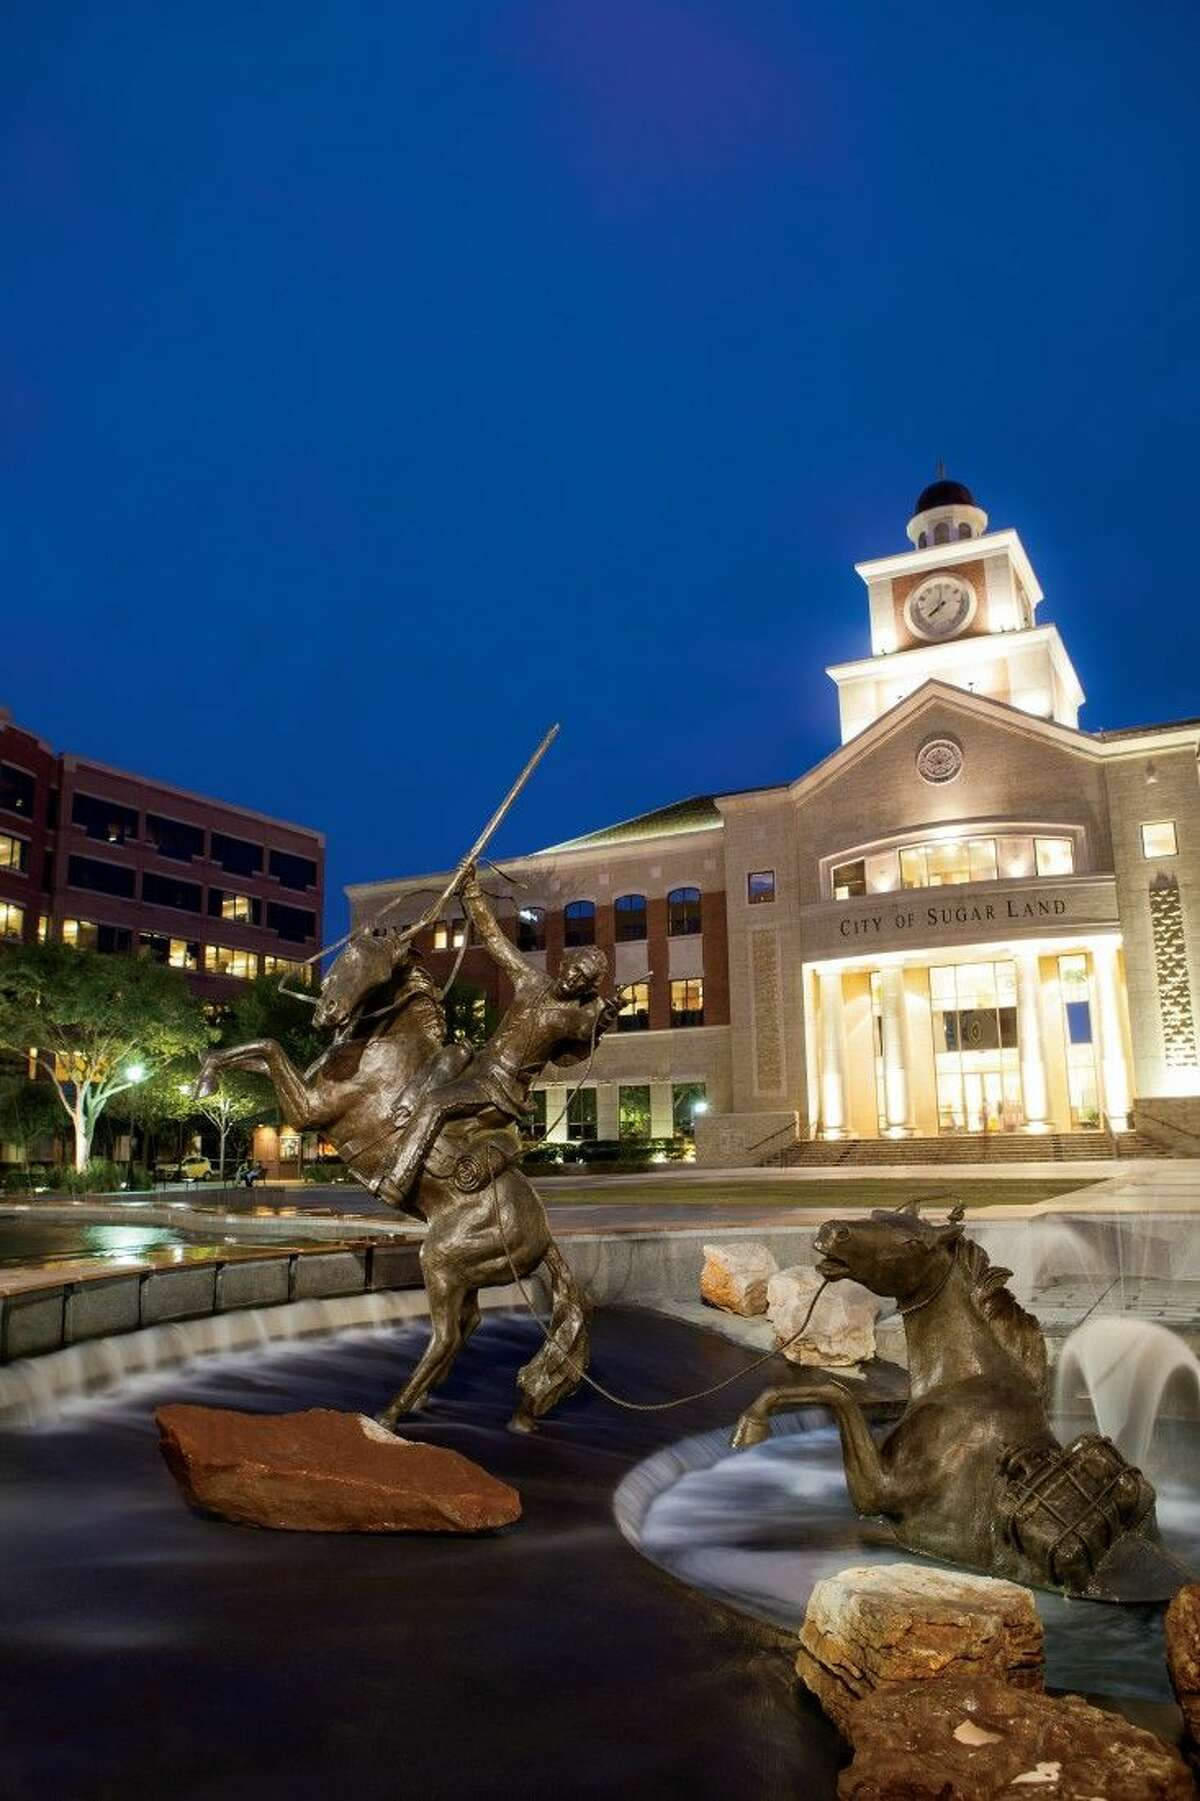 The guide includes information on quality of life amenities and attractions, such as Sugar Land Town Square.